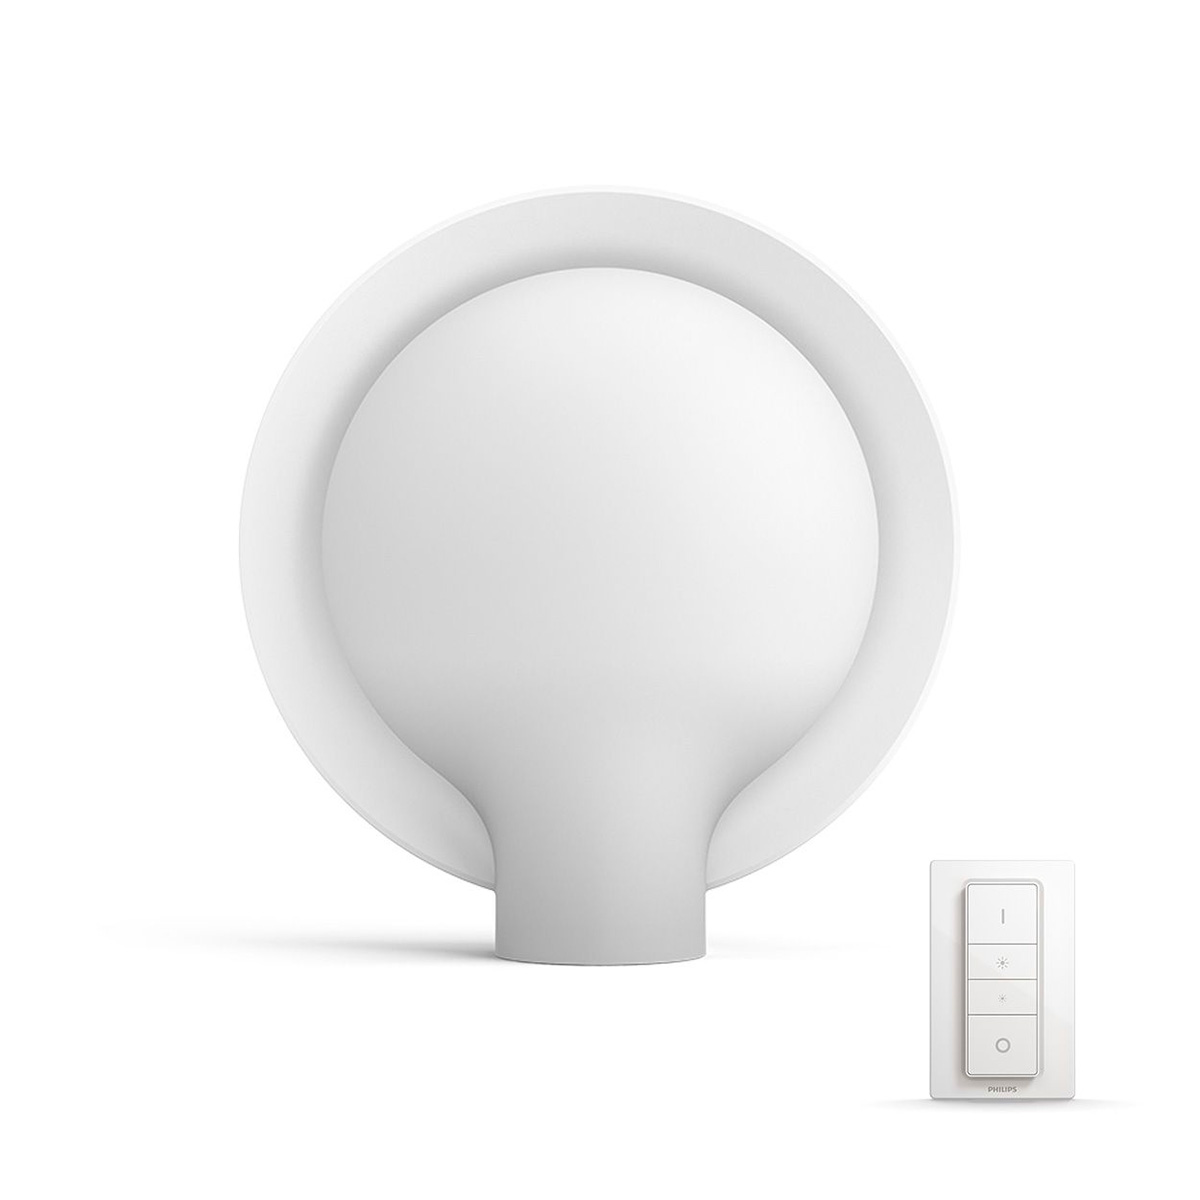 Image of   Philips Hue bordlampe - Felicity - Hvid